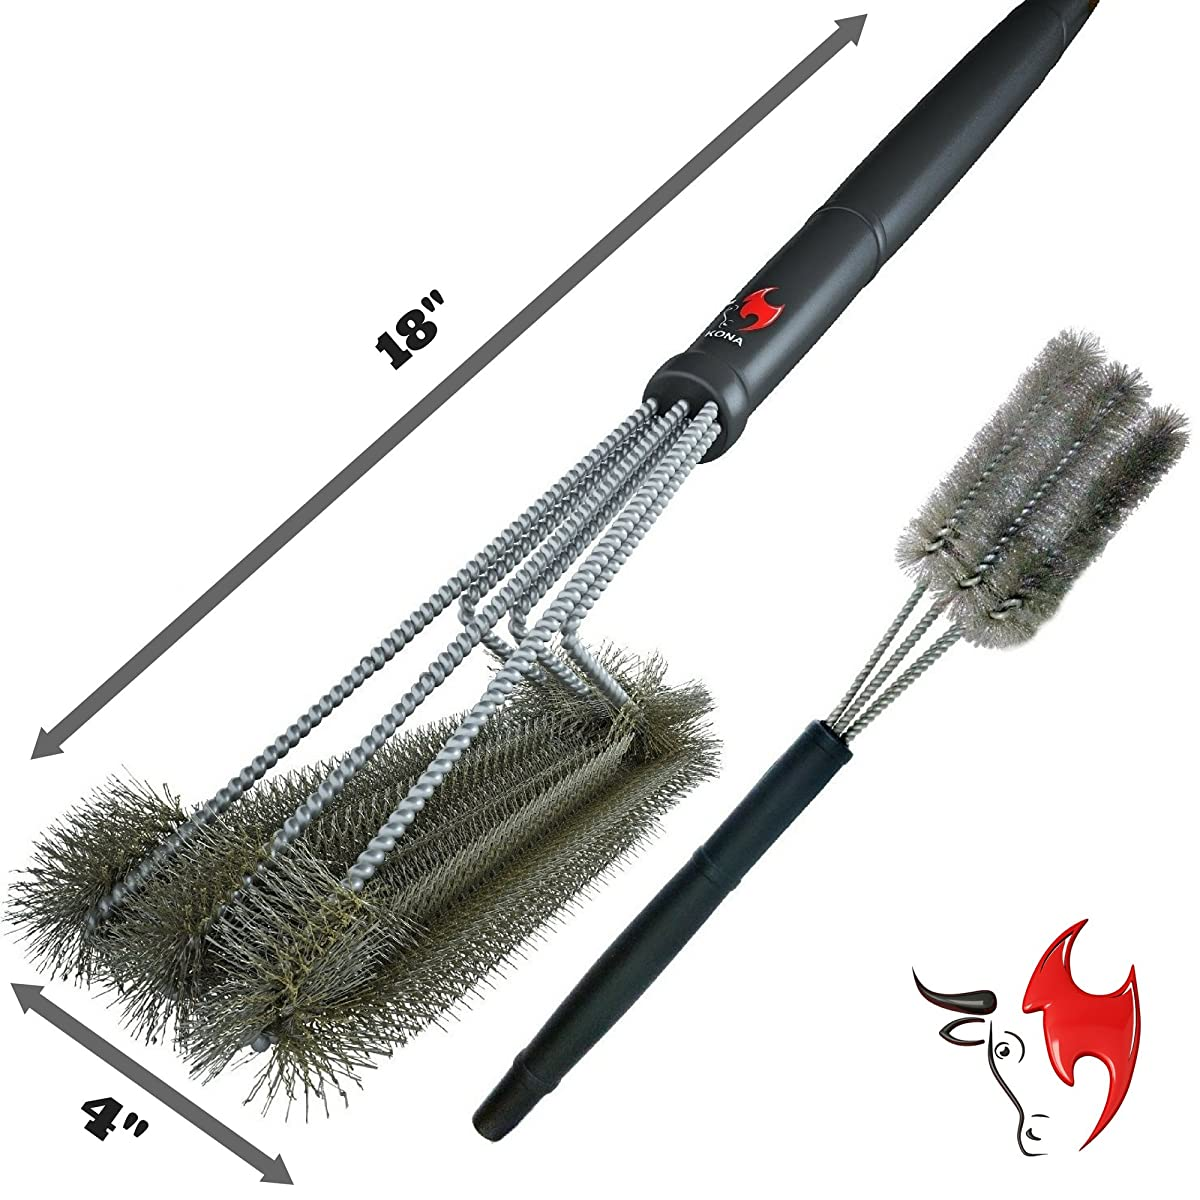 """360° Clean Grill Brush, Kona 18"""" Best BBQ Grill Brush - Stainless Steel 3-In-1 Grill Cleaner Provides Effortless Cleaning, Great Grill Accessories Gift"""